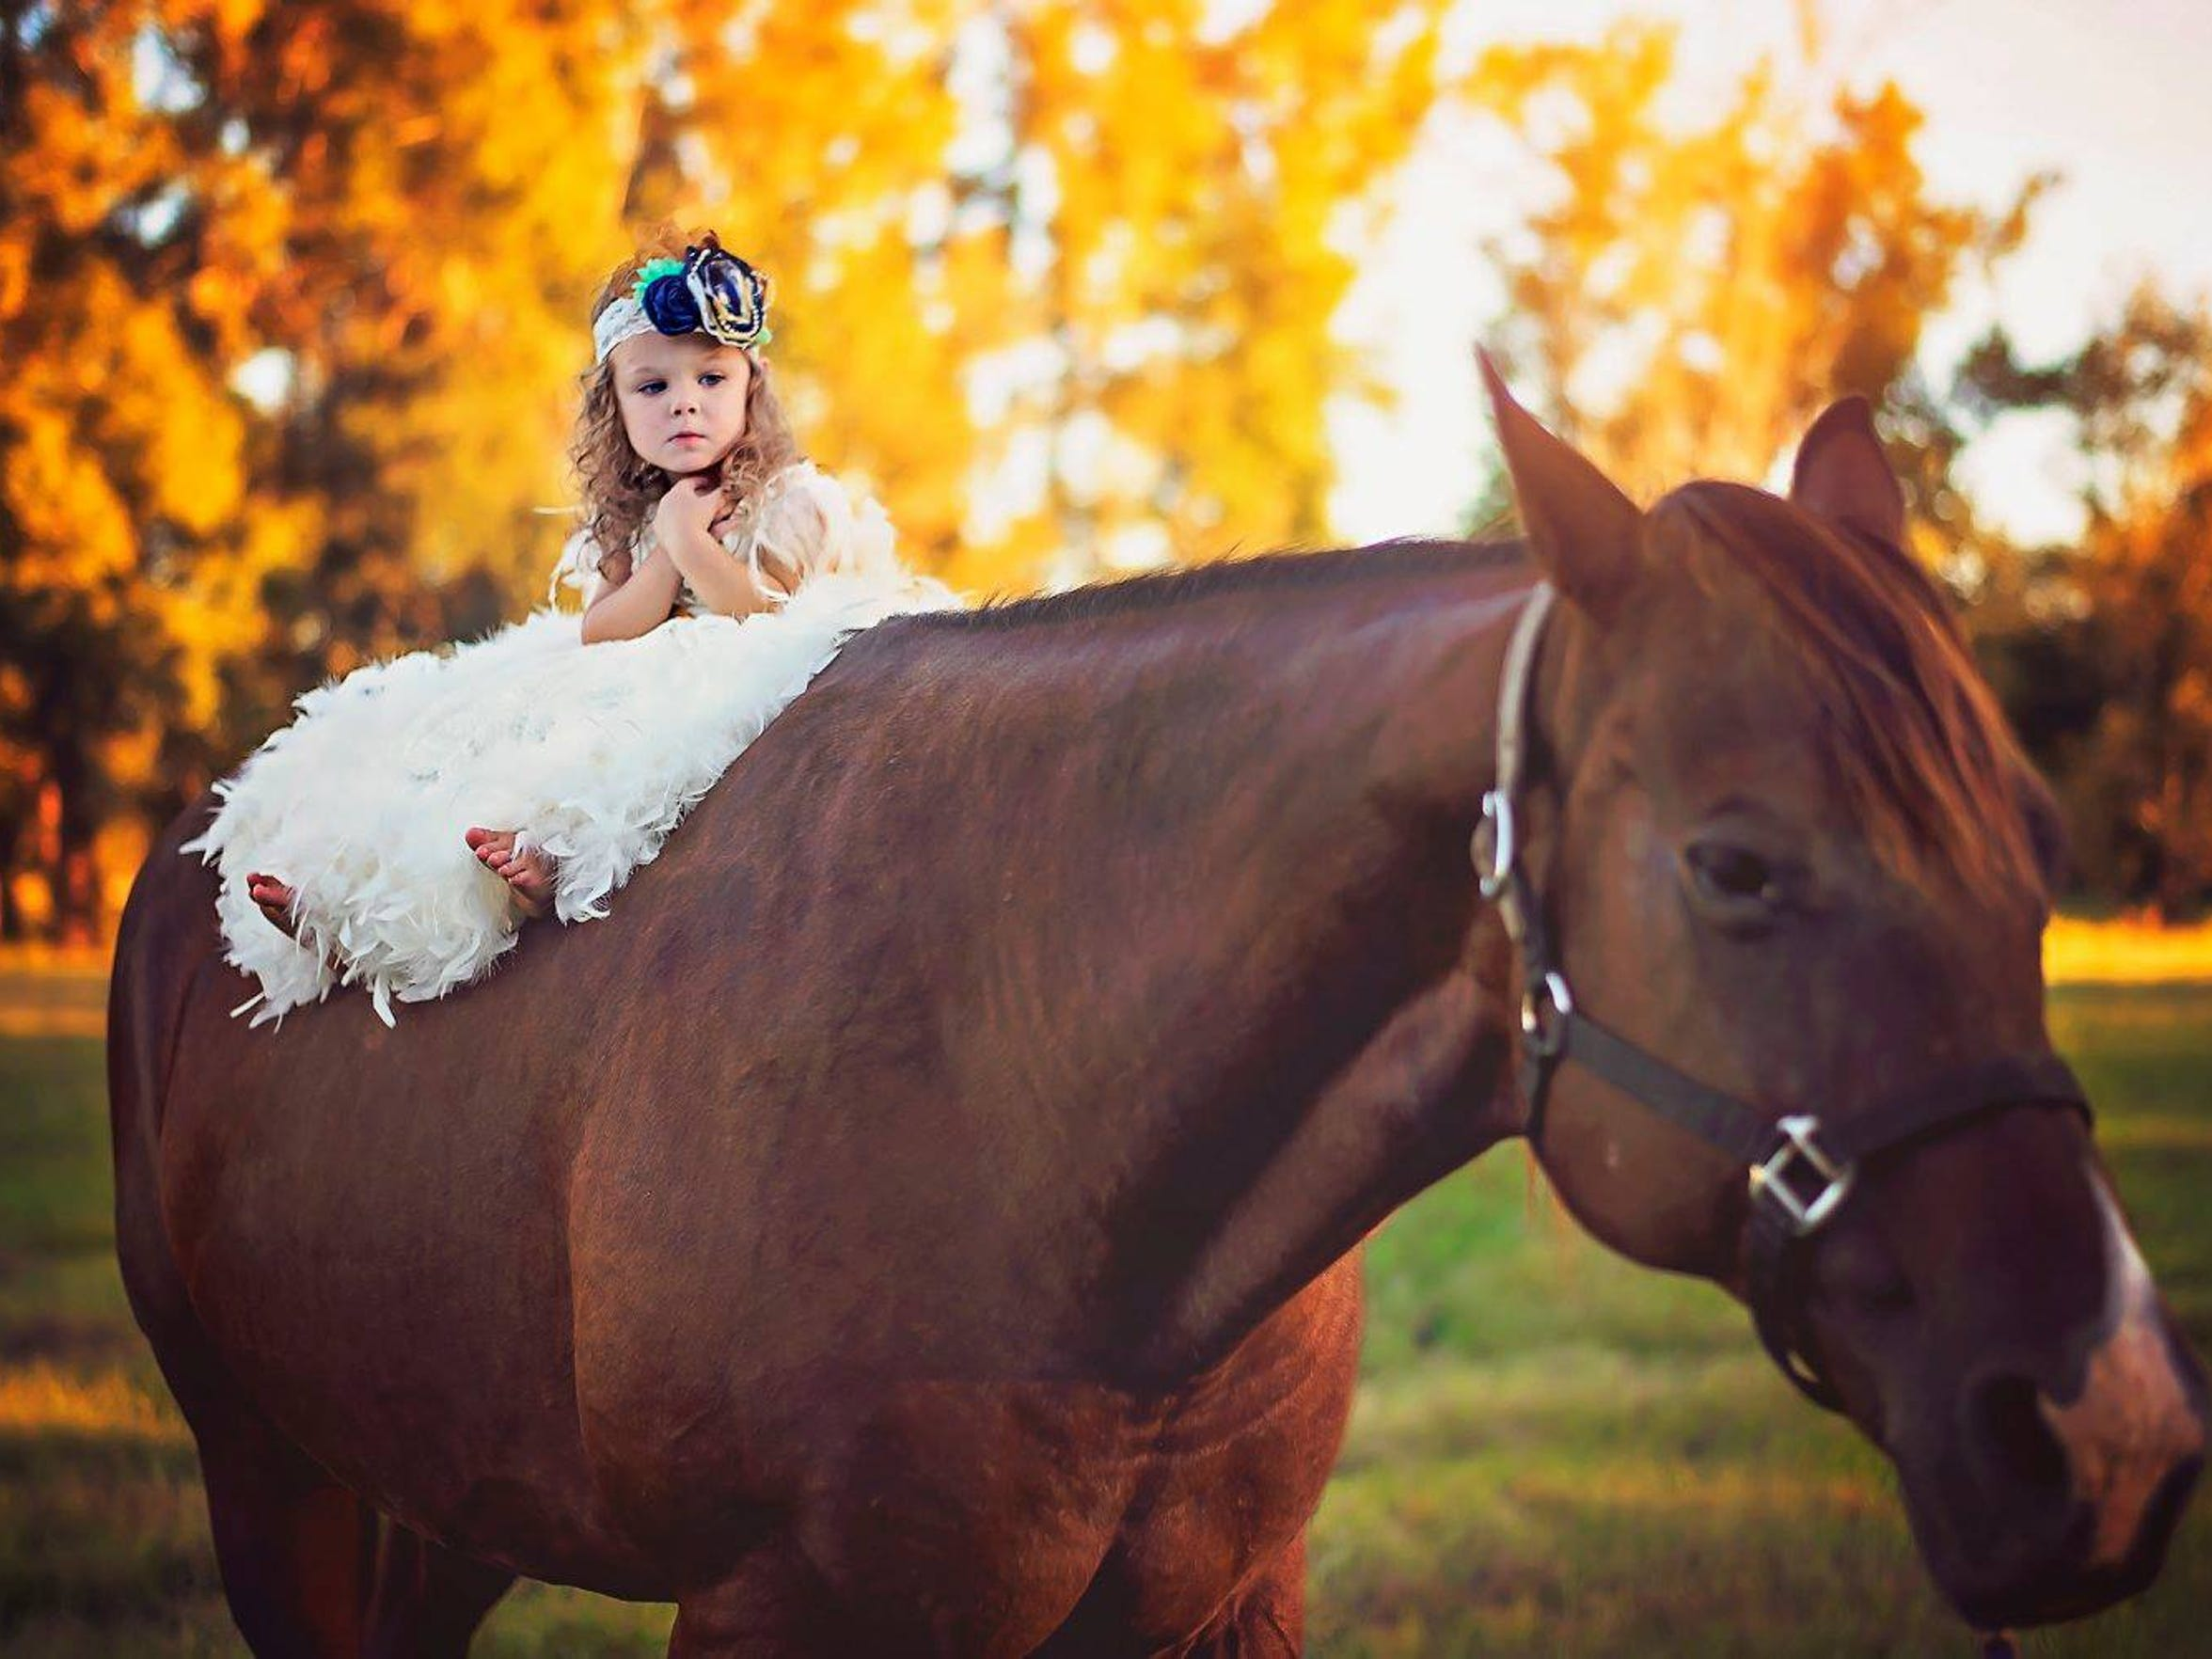 Londyn poses on a horse for her third birthday pictures.